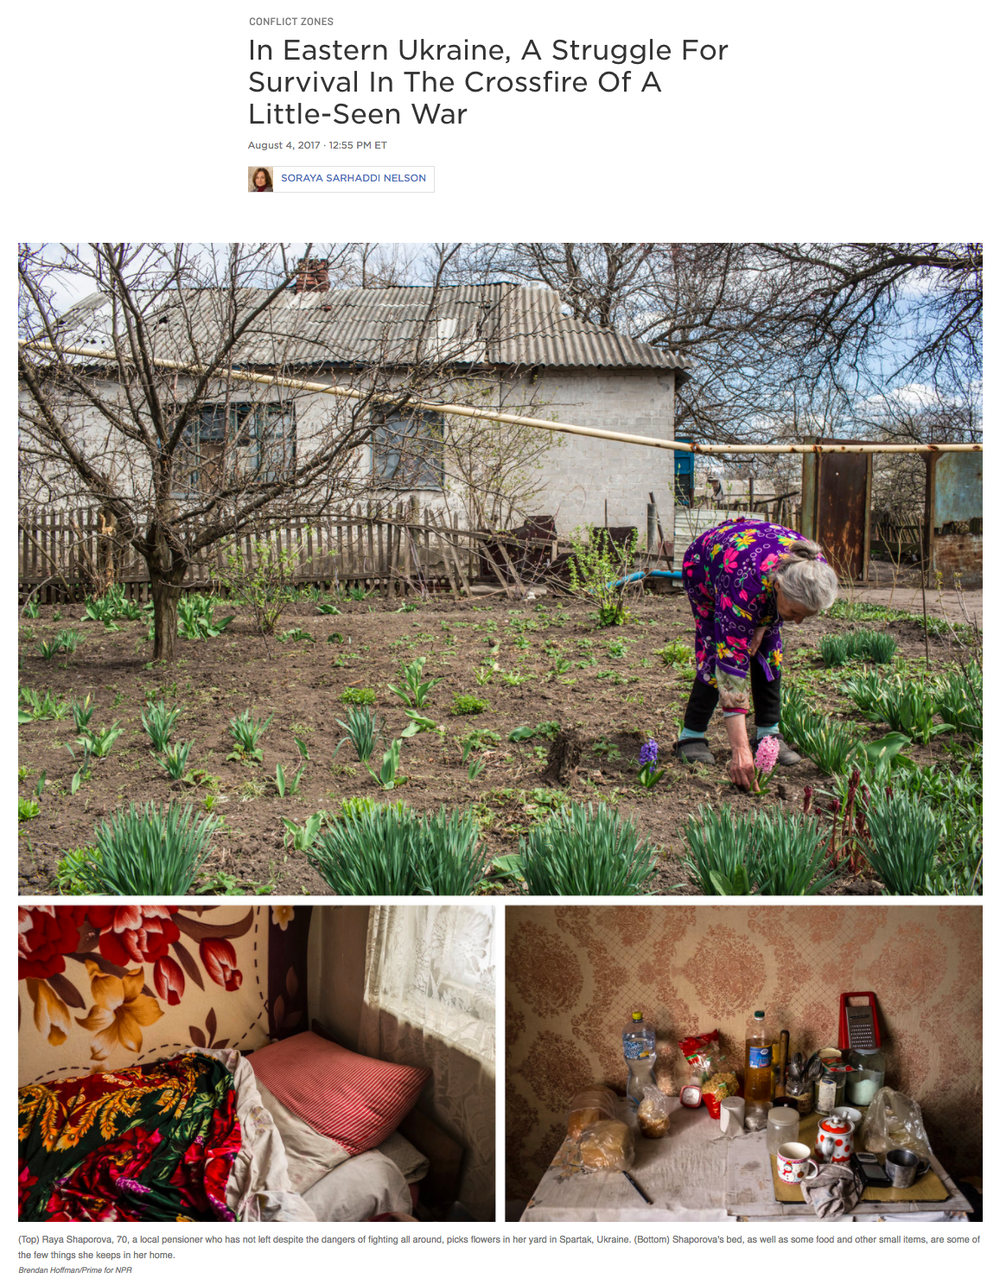 Photography + Writing:  Brendan Hoffman  for NPR  Photo Editing: Ariel Zambelich  Story:  In Eastern Ukraine, A Struggle For Survival In The Crossfire Of A Little-Seen War